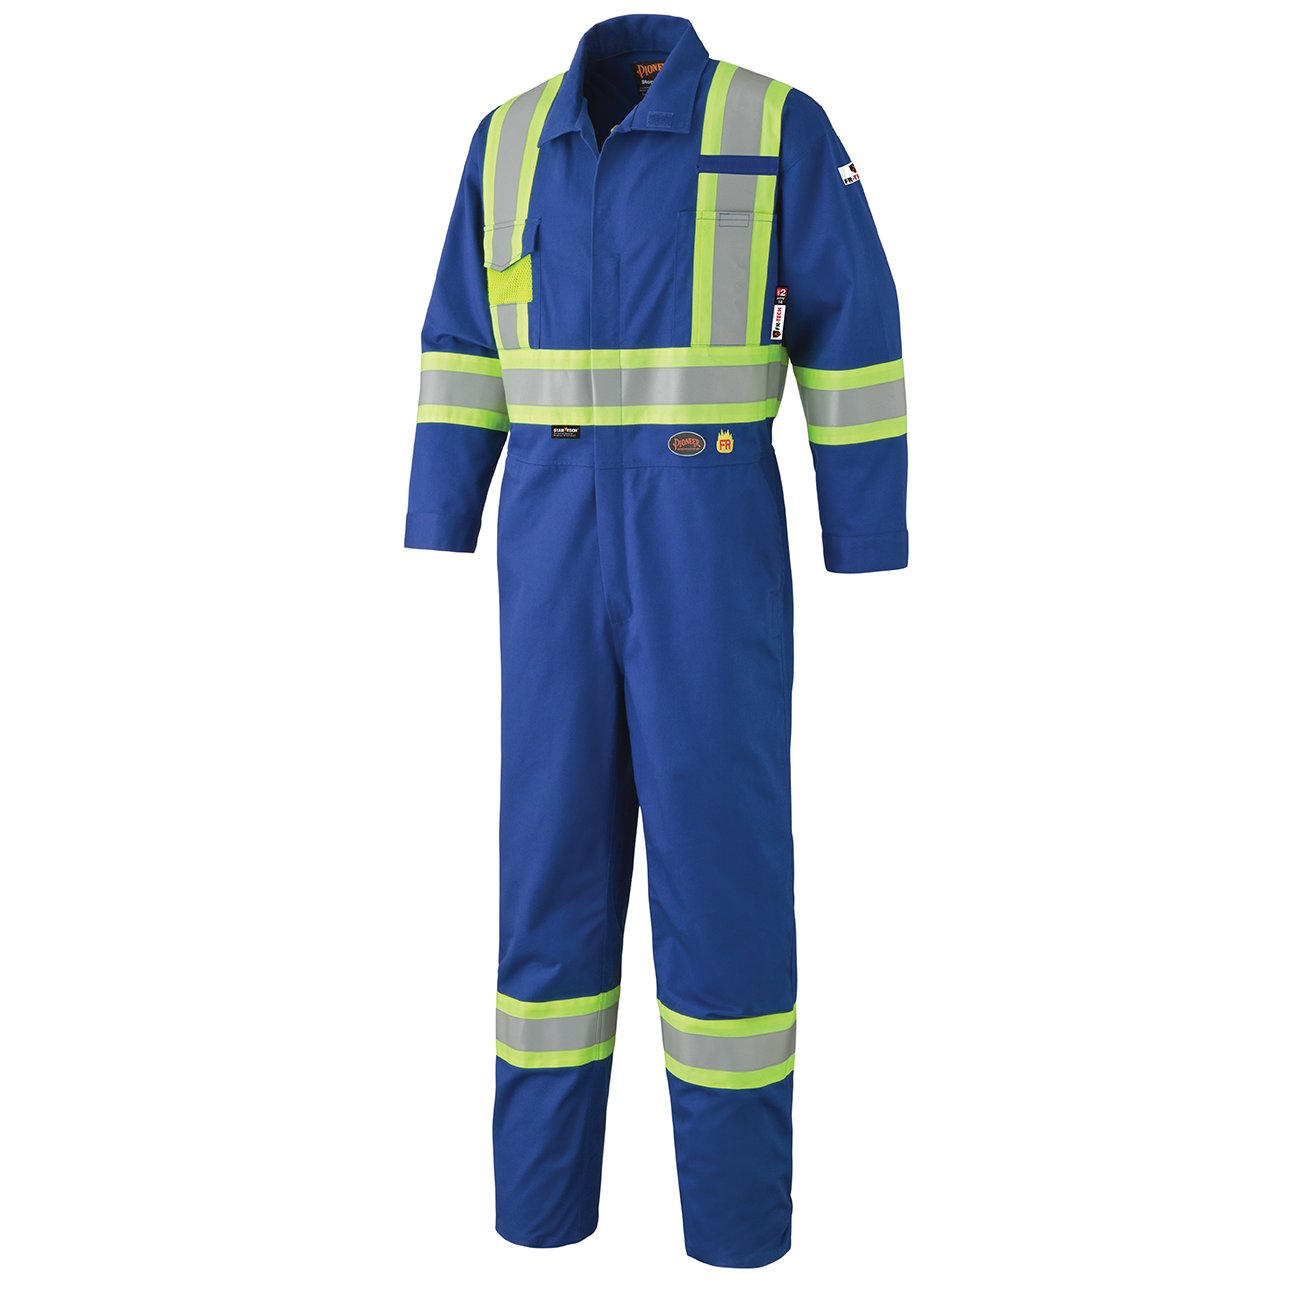 Pioneer FR-Tech FR Safety Coverall V2540180 - 7700